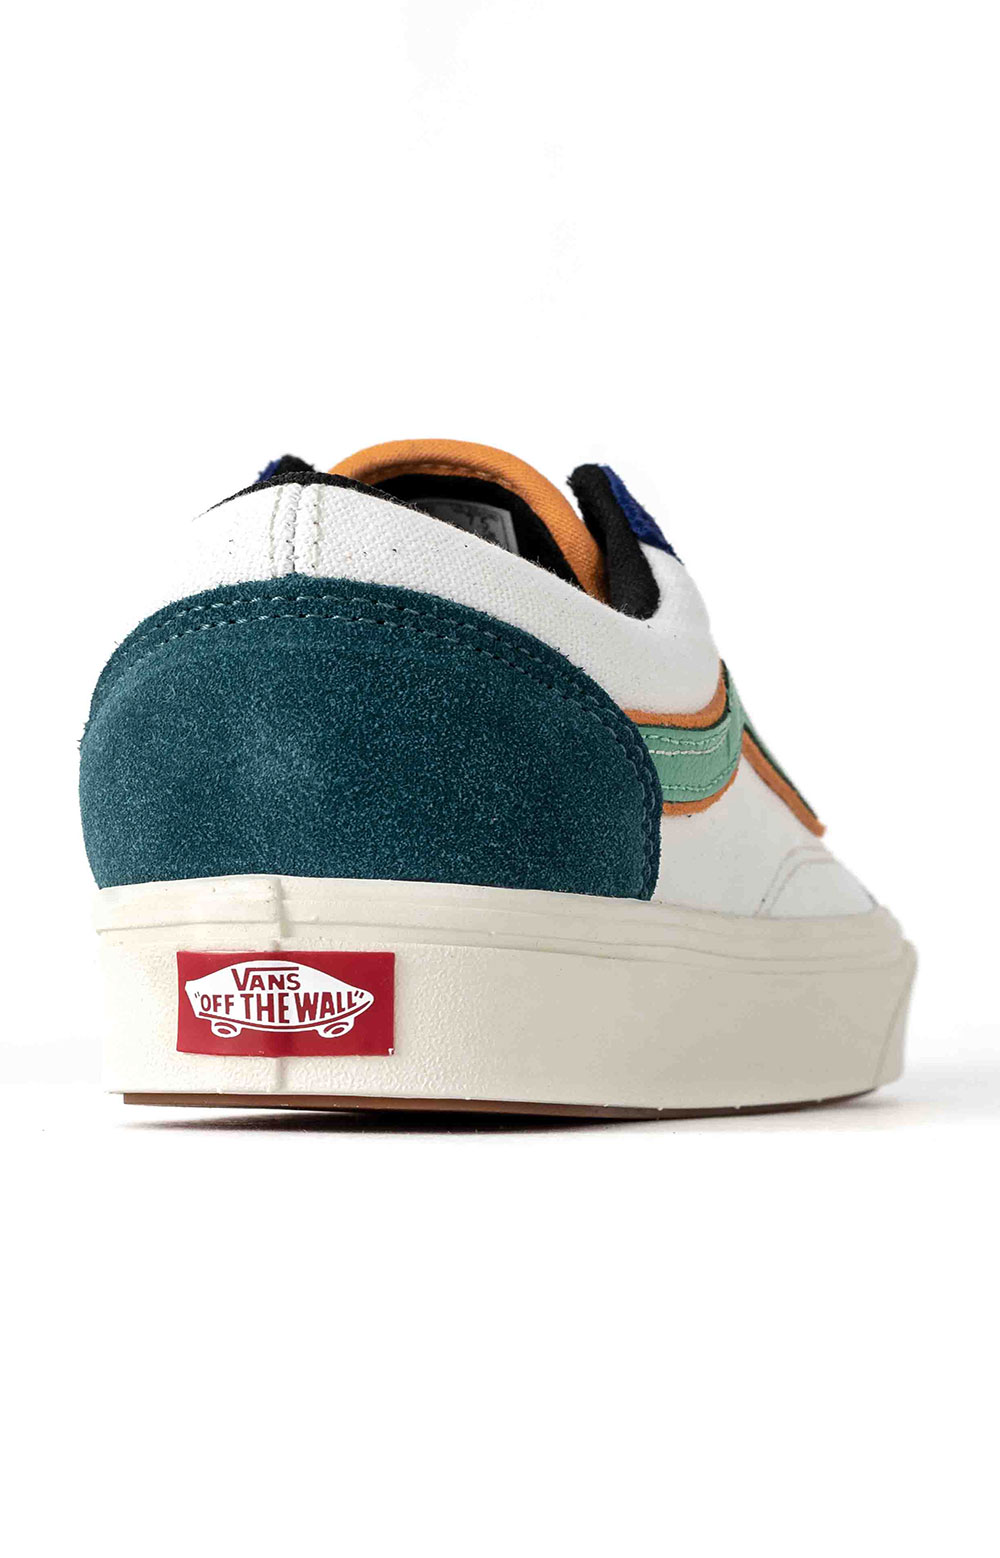 (WMAWWF) Bugs Old Skool ComfyCush Shoe - Multi 5